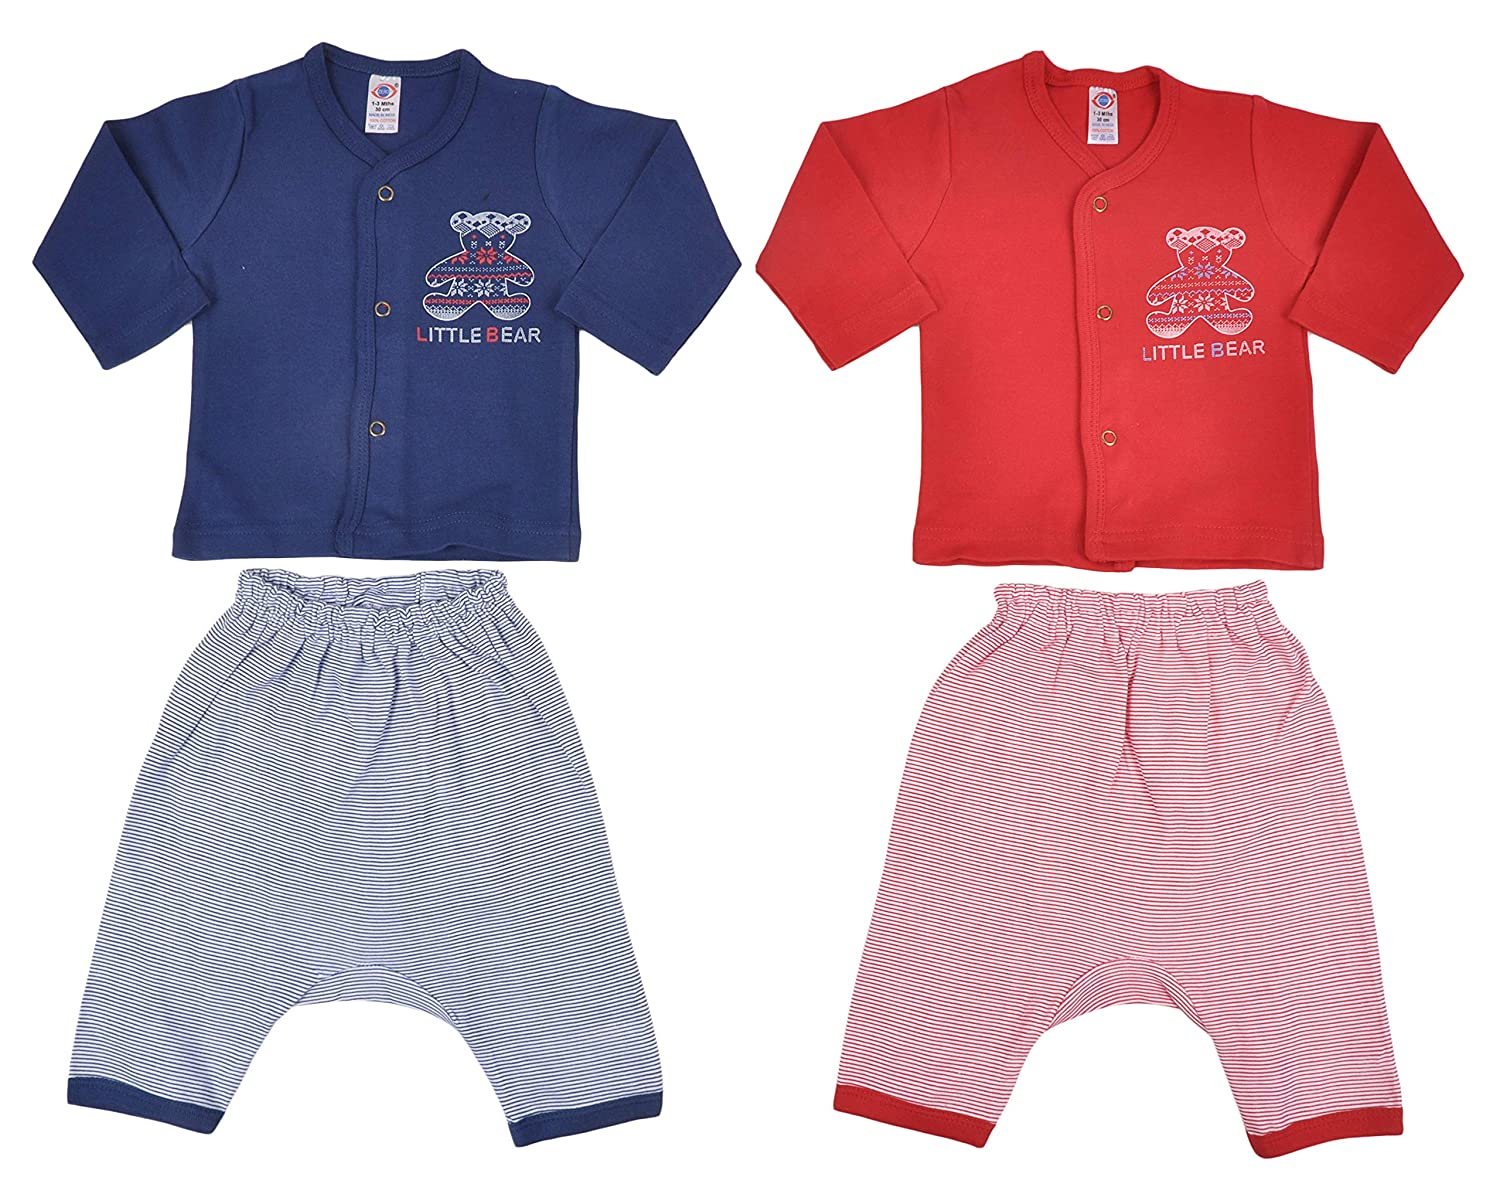 ZERO Baby Cotton Clothes Full Sleeves Clothing Set, Red 0-3 Months (Pack of 2)